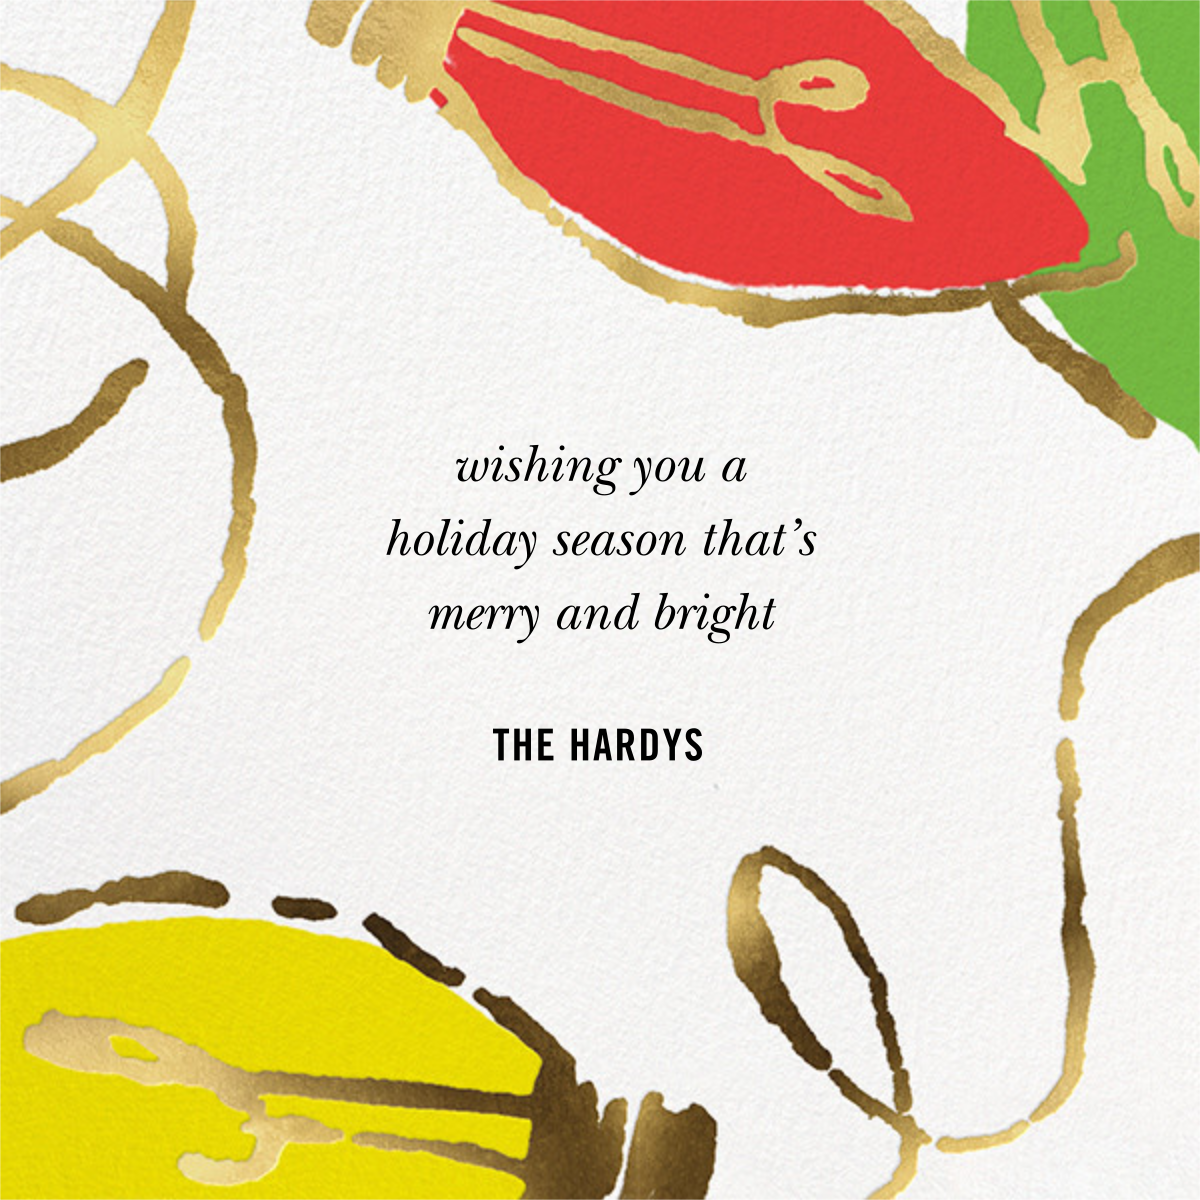 Blinky and Bright - kate spade new york - Holiday cards - card back